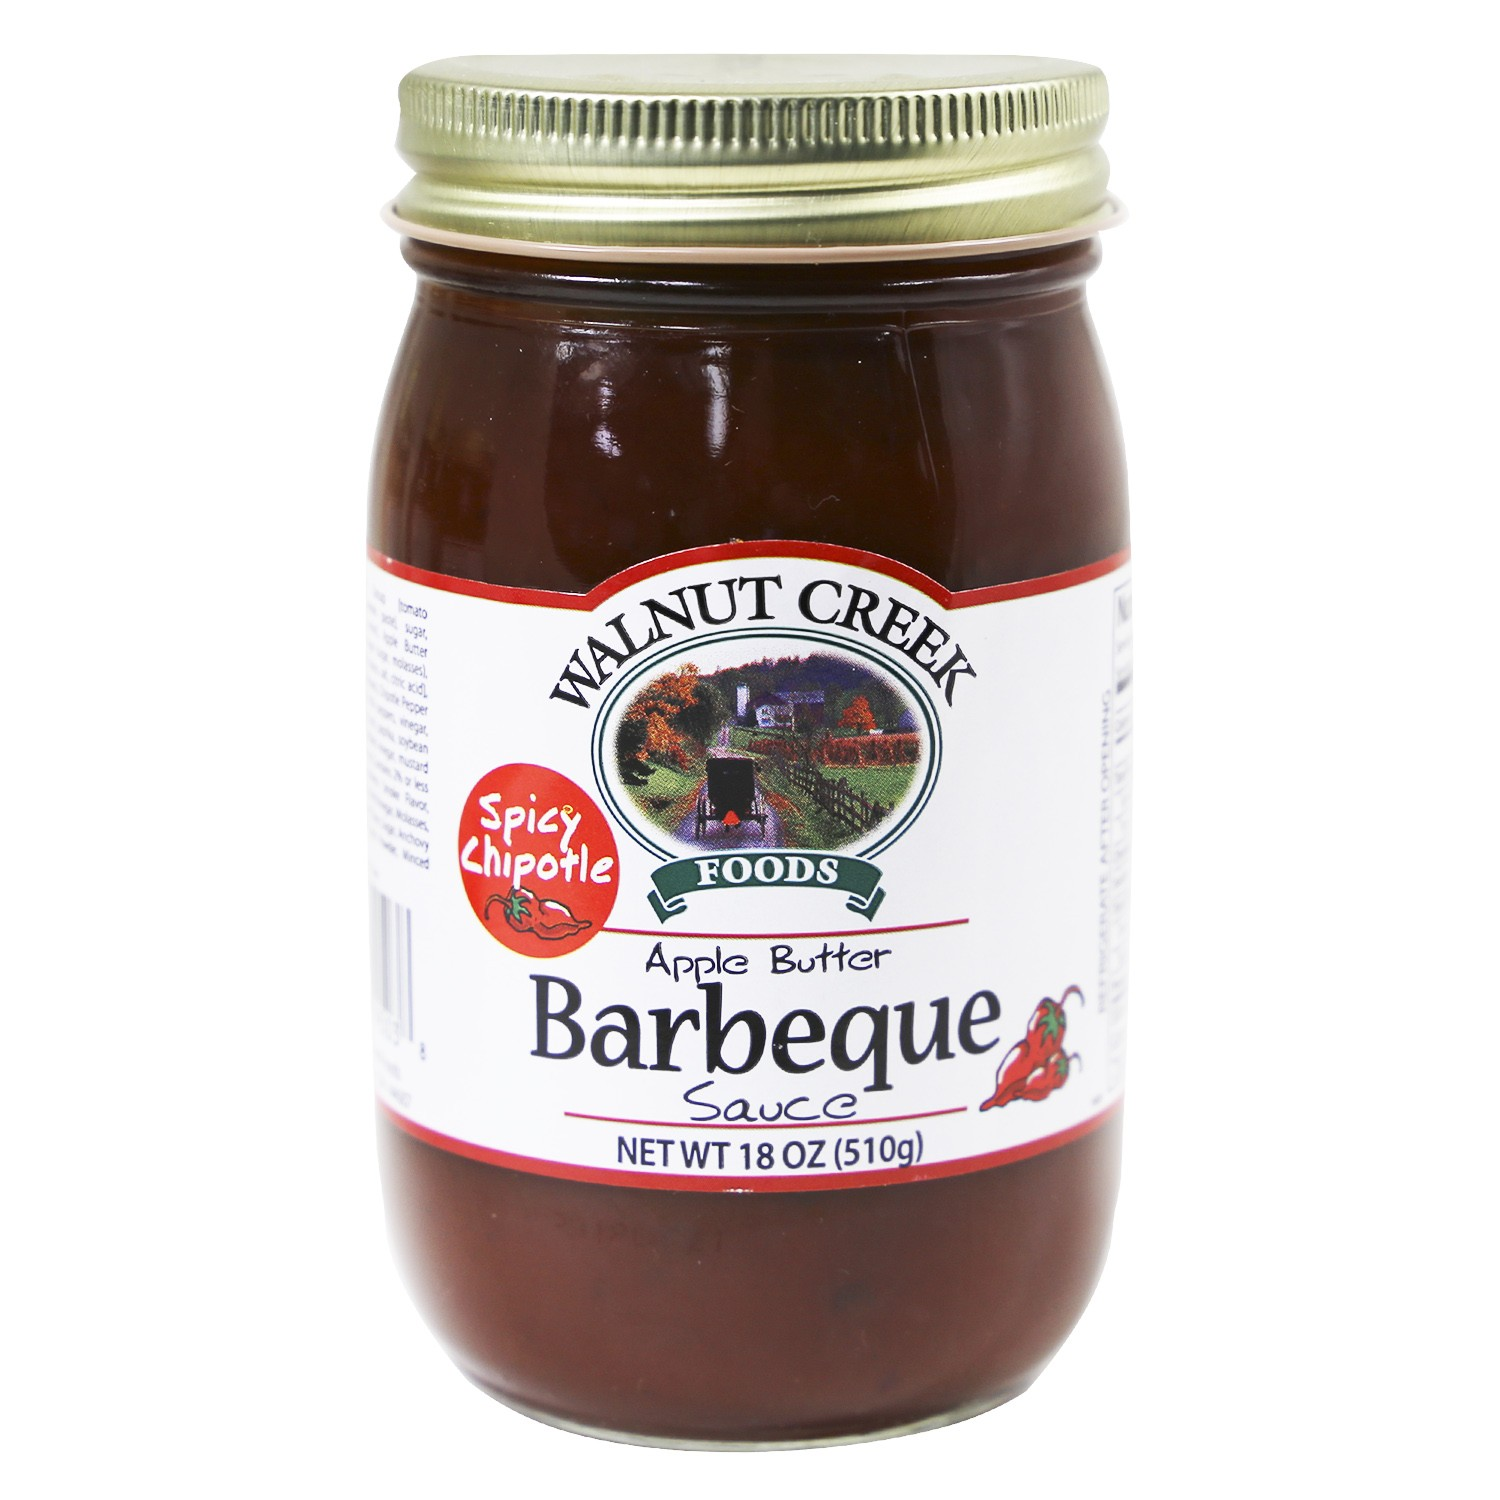 Chipotle Apple Butter BBQ Sauce